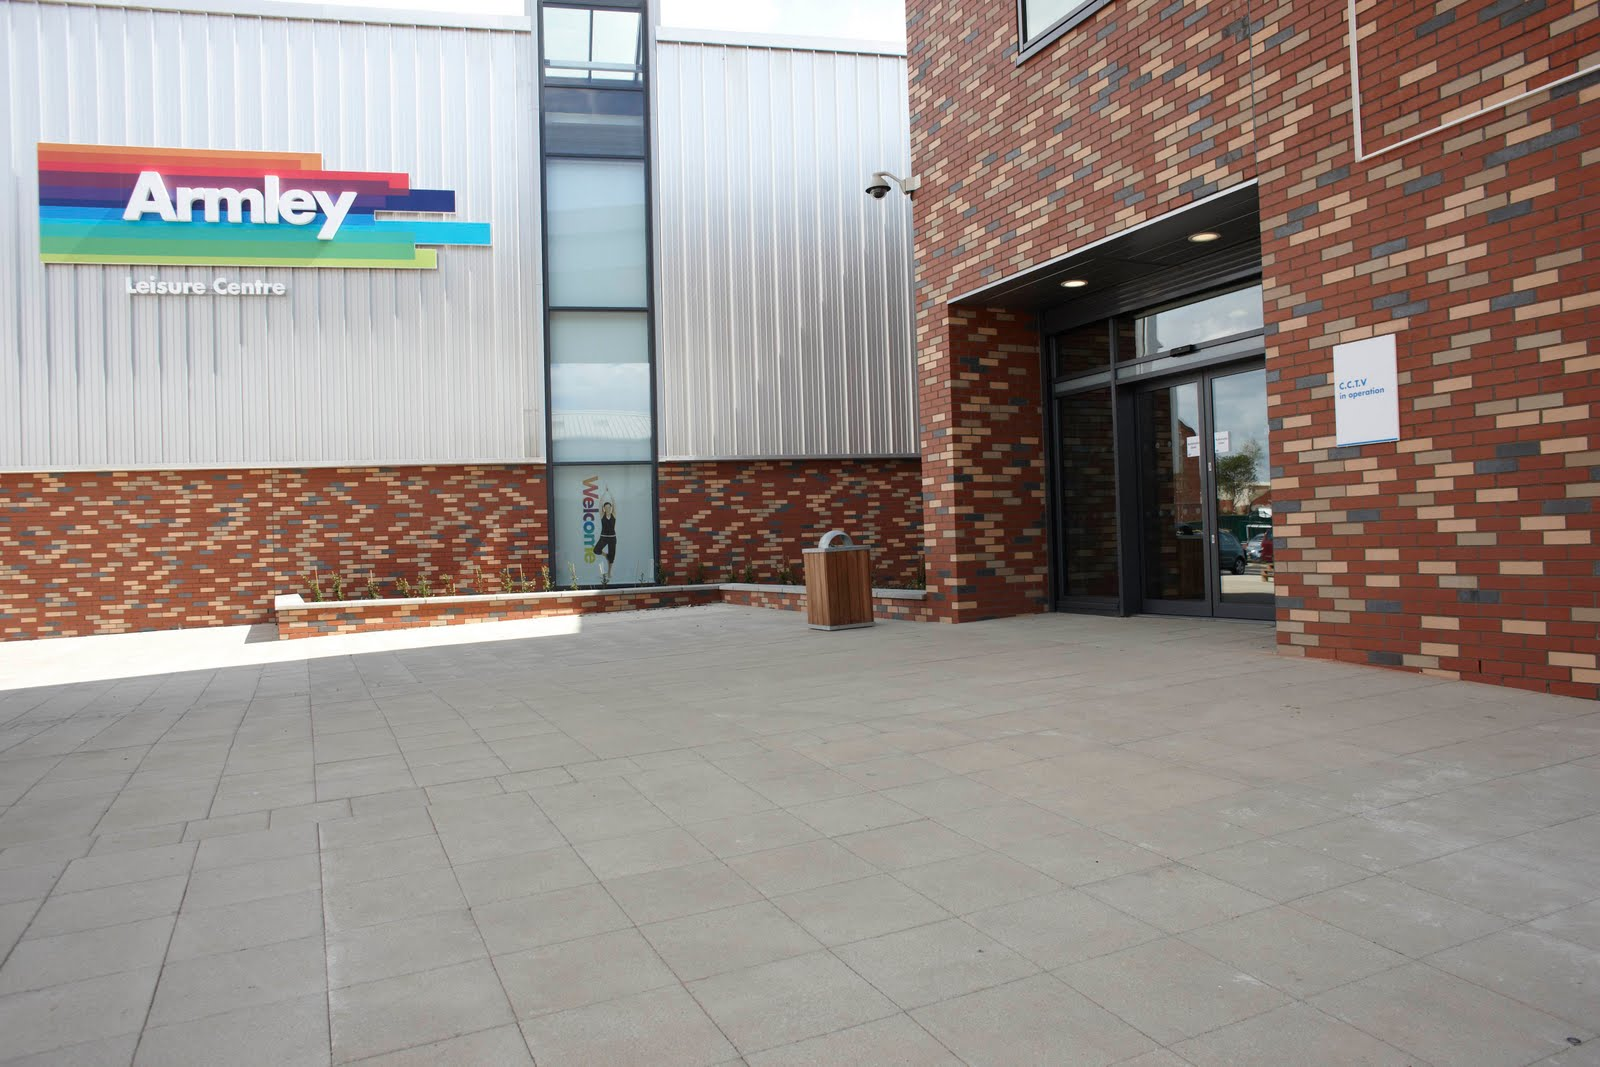 Latest news new armley leisure centre ready for action for Swimming pools leeds city centre